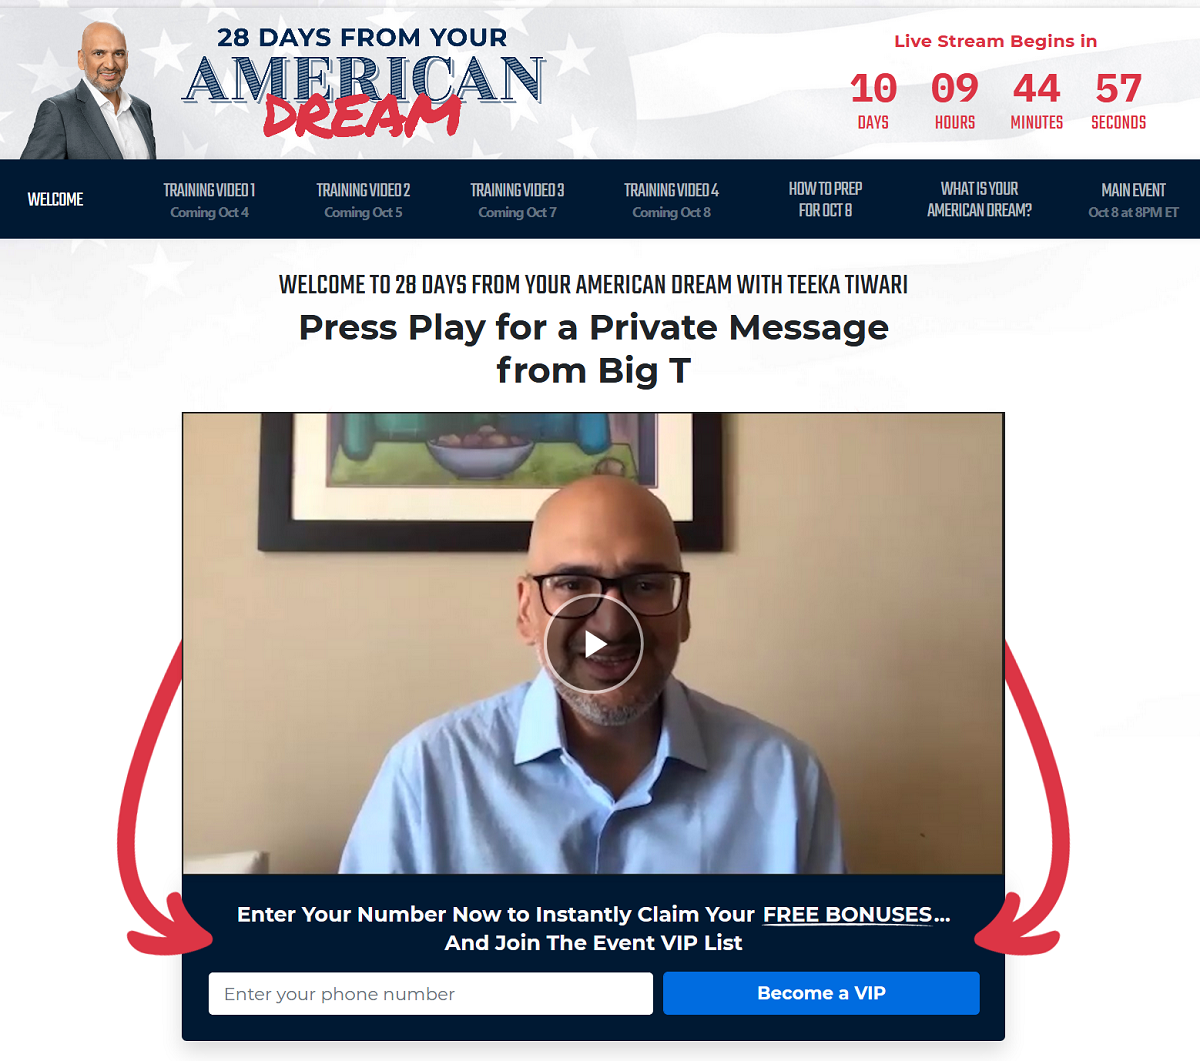 Teeka Tiwari's 28 Days From Your American Dream Event: Teeka Tiwari Reveals a New Way To Make Money From Blue-Chip Stocks